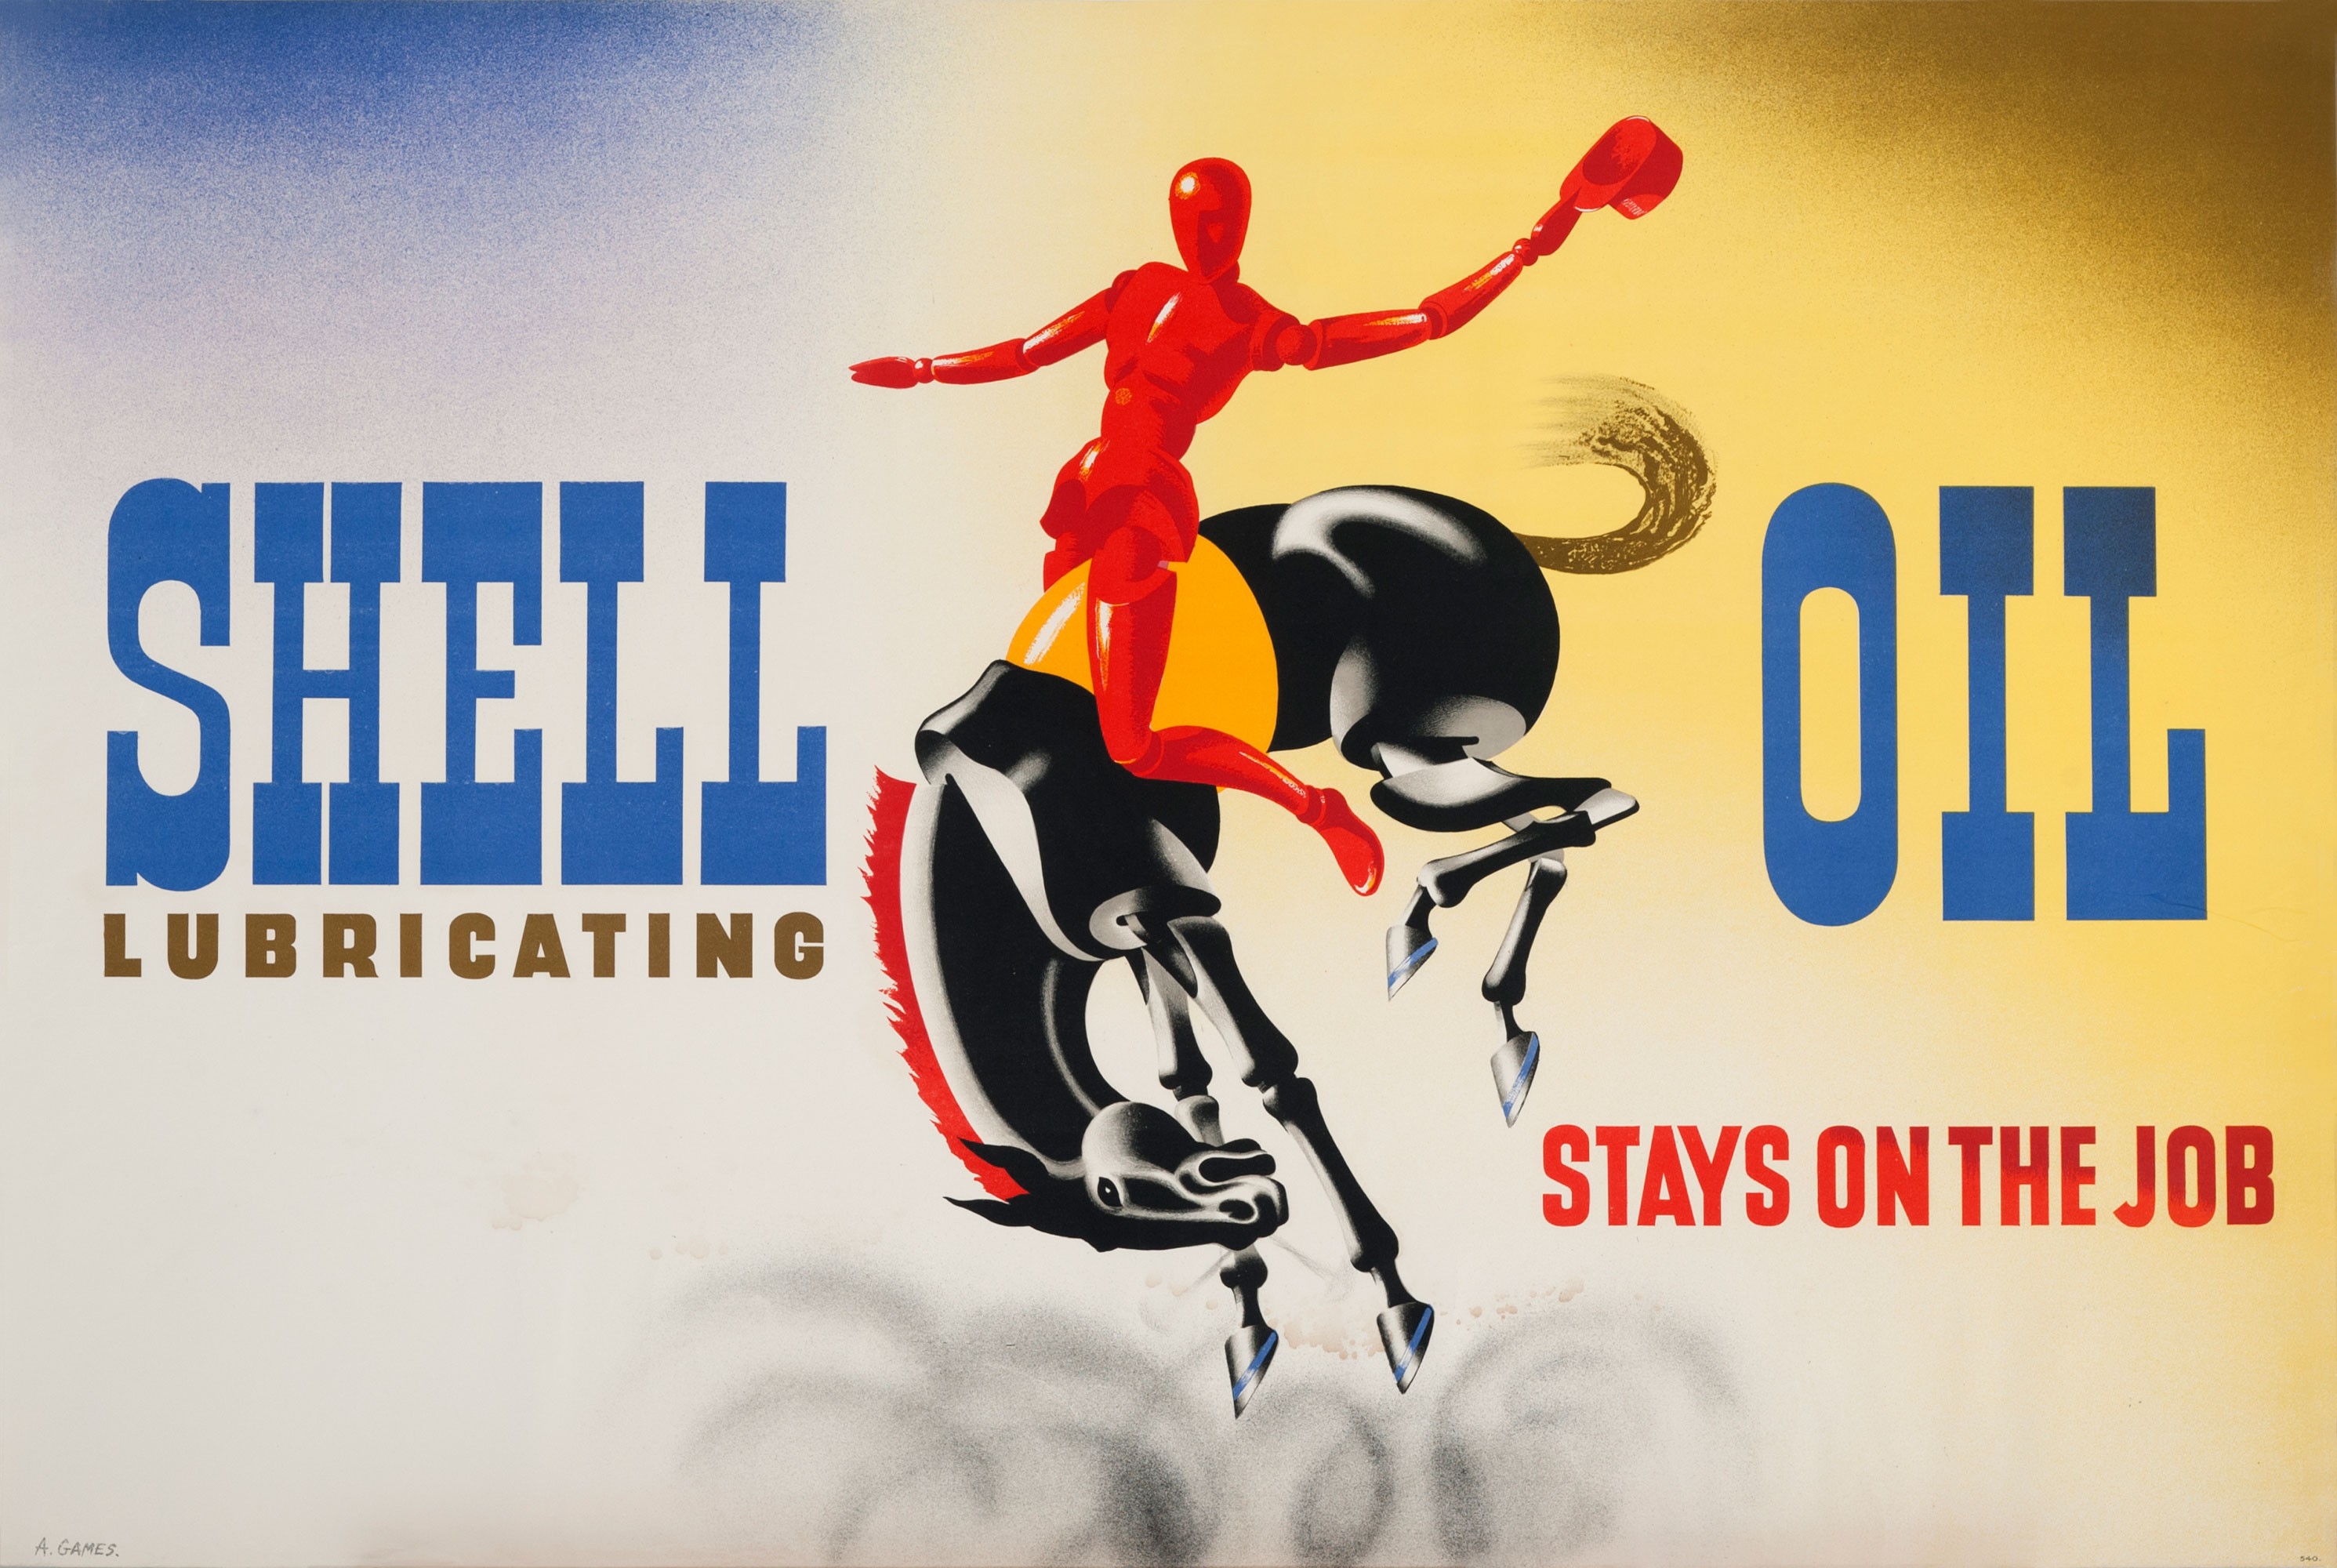 Shell poster number 540, Shell oil stays on the job (1939) by Abram Games. Painting shows red figure riding a bucking horse.